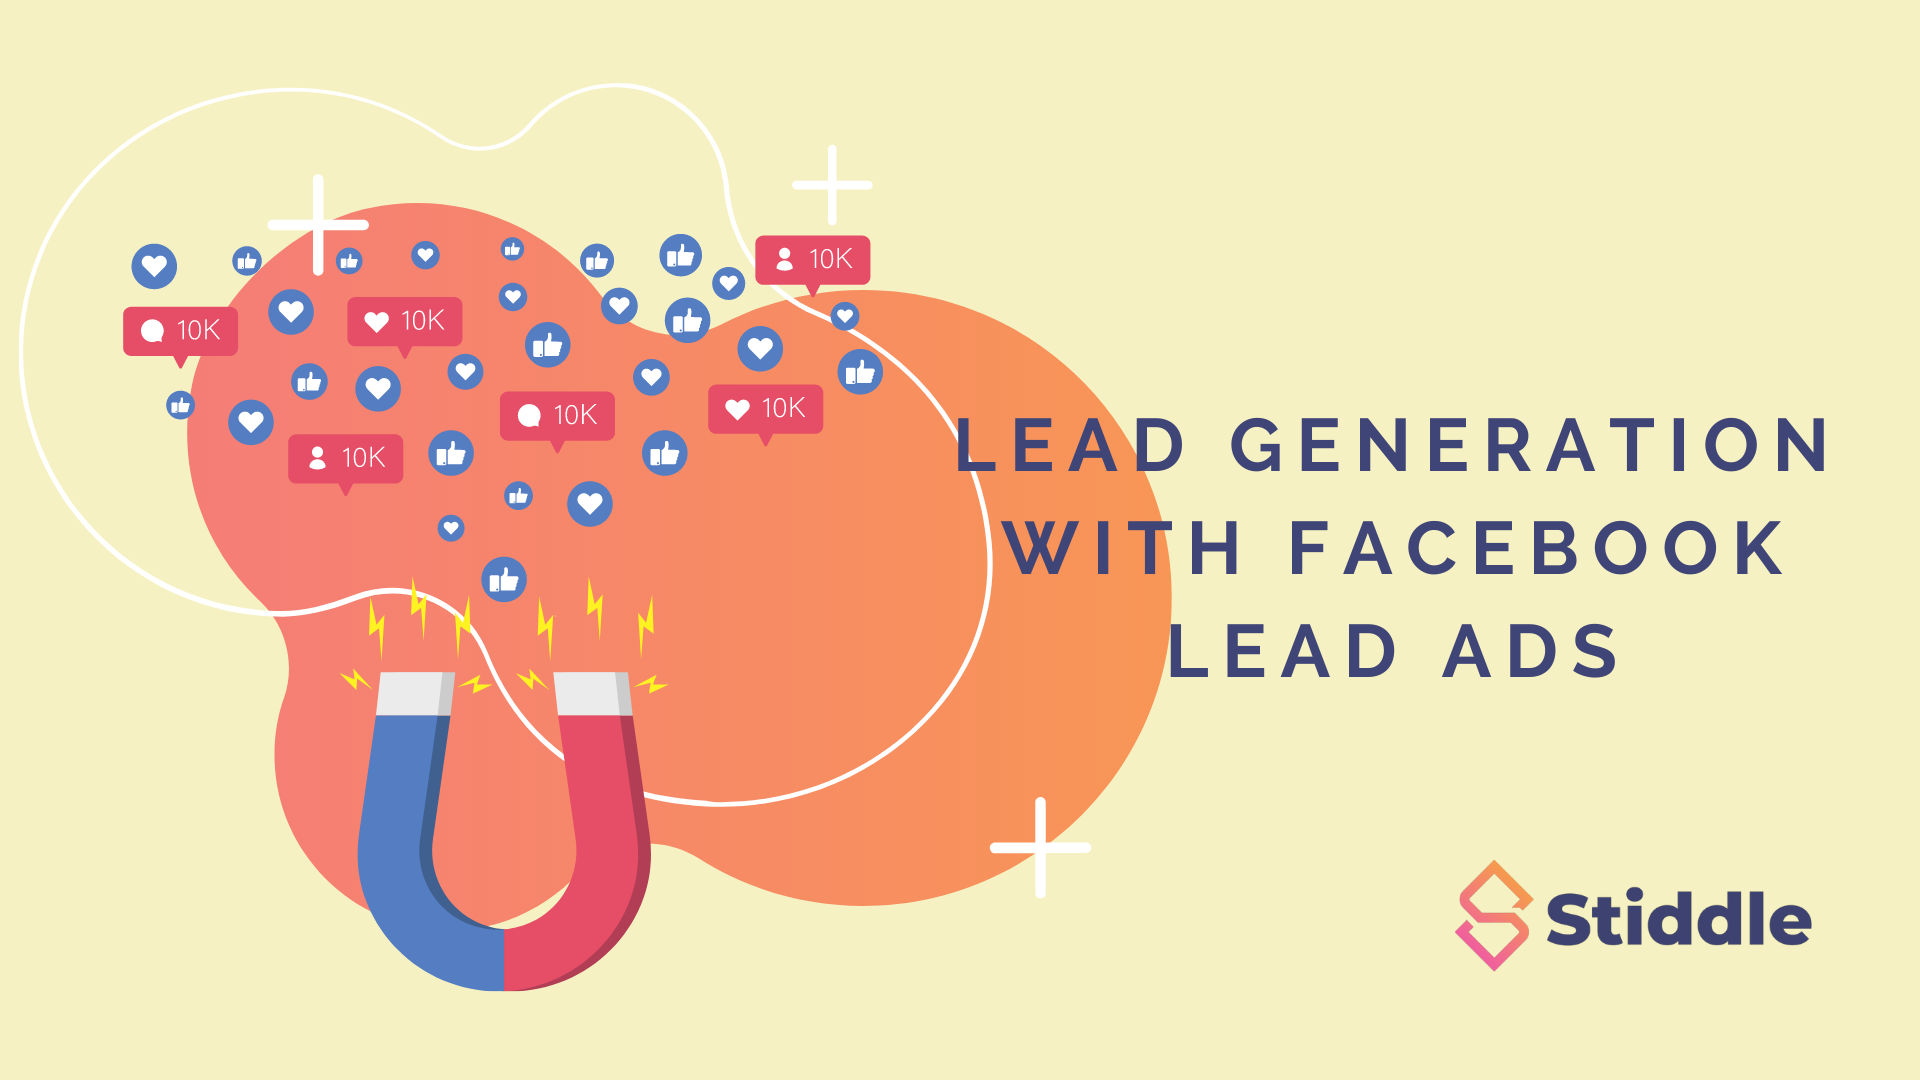 Lead Generation with Facebook Lead Ads